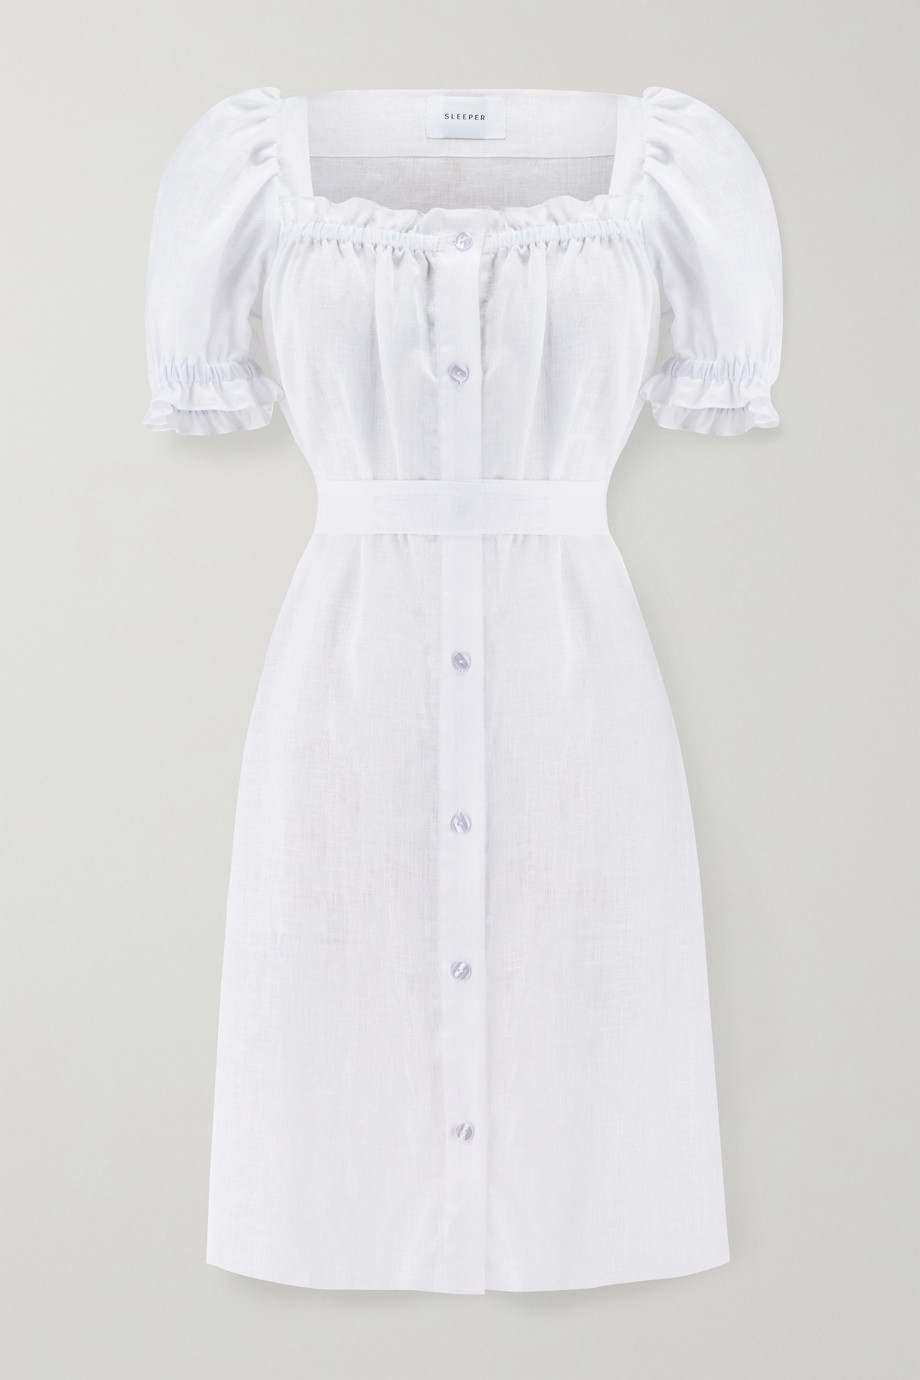 Sleeper Brigitte belted ruffled linen mini dress